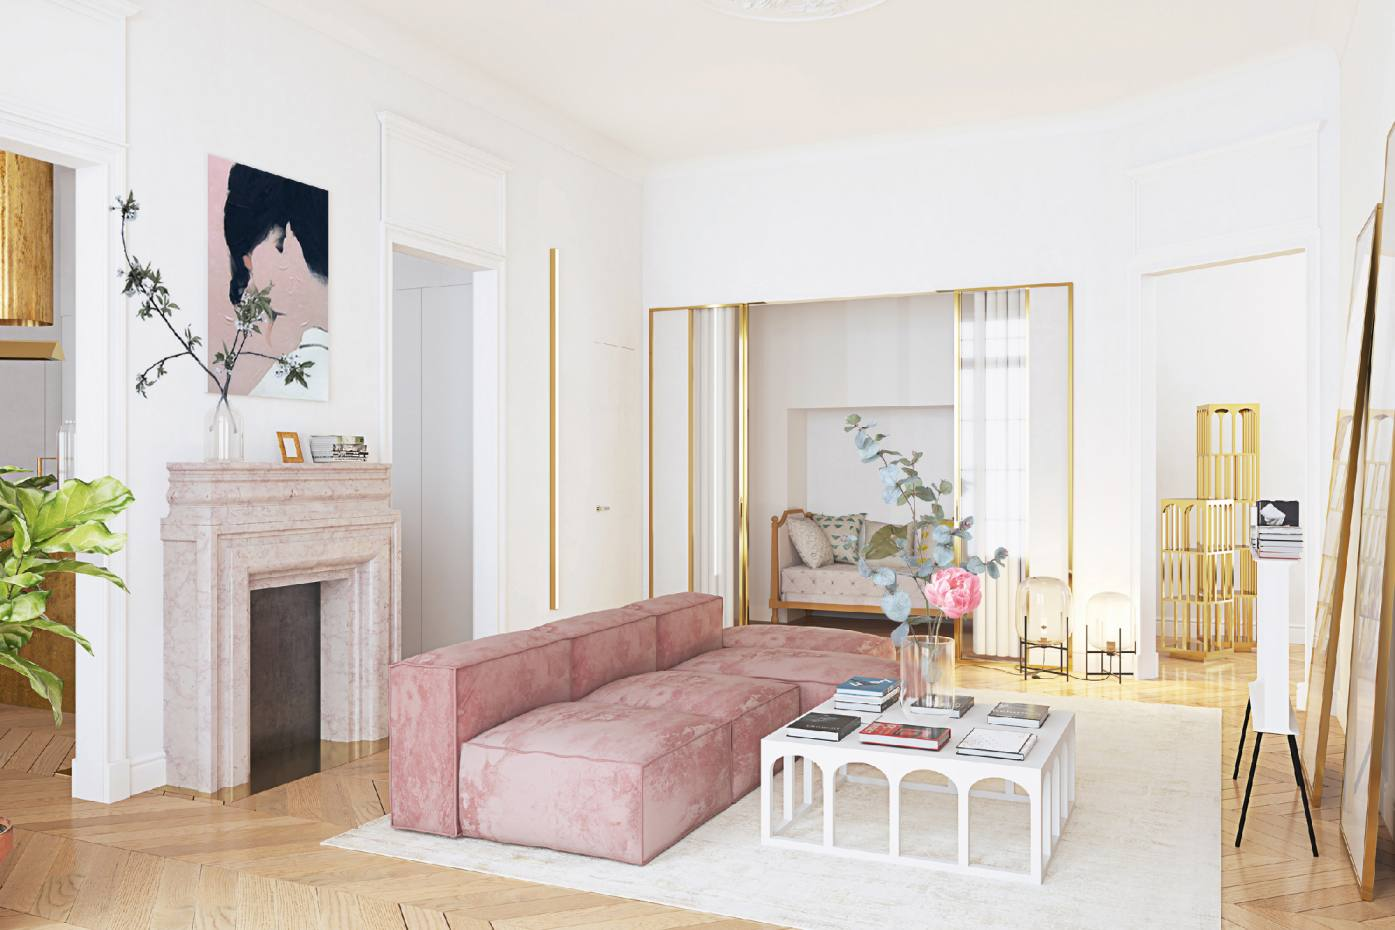 A moscow apartment featuring a pink colour scheme by crosby studios